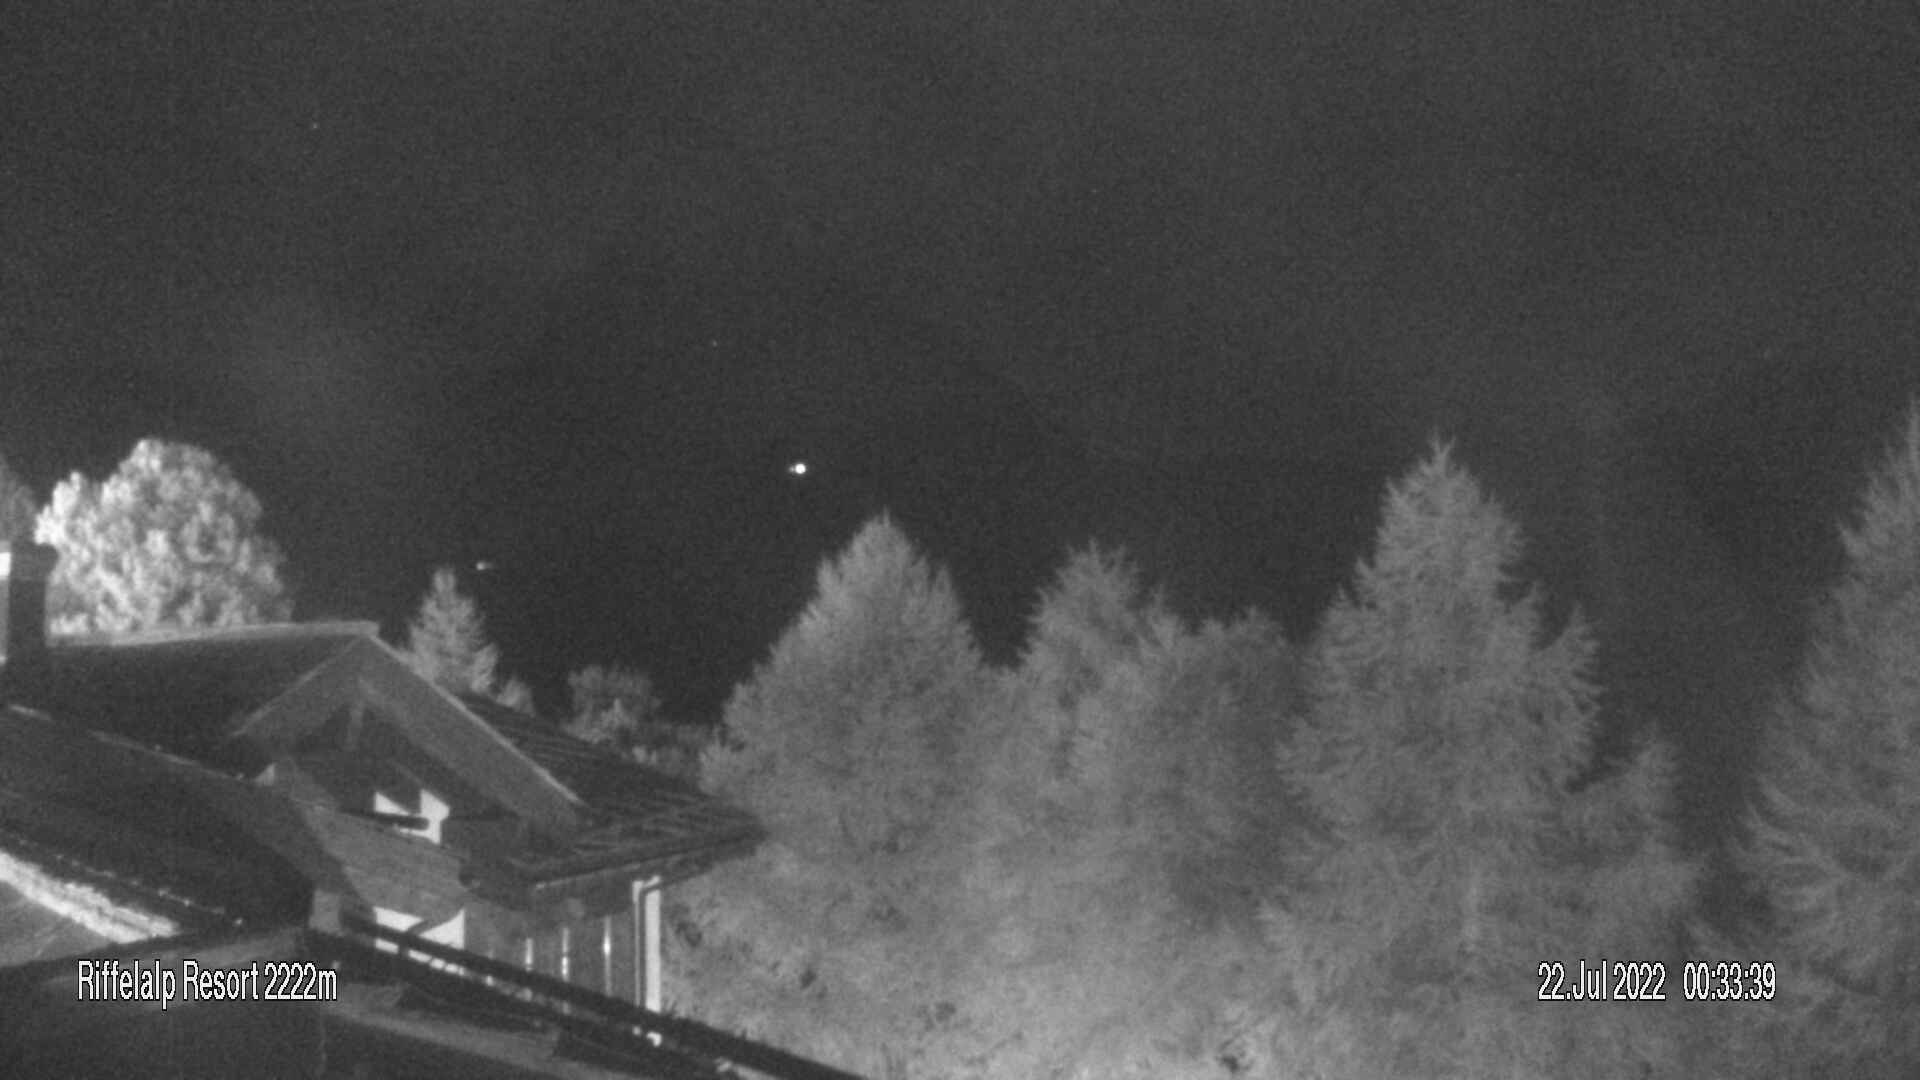 Webcam Riffelalp - Alt. 2222 m